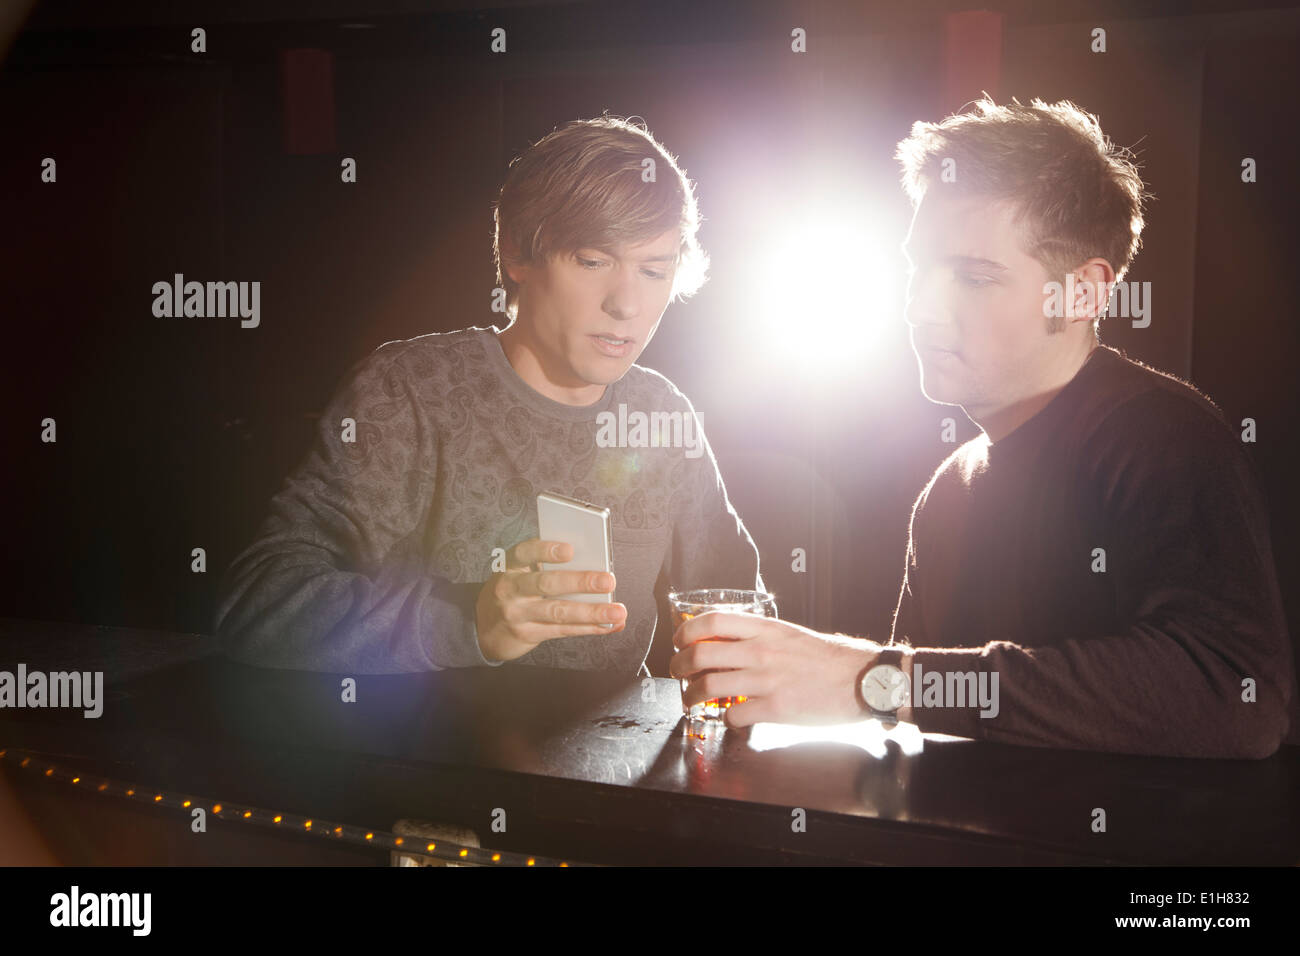 Two male friends looking at smartphone in nightclub Stock Photo